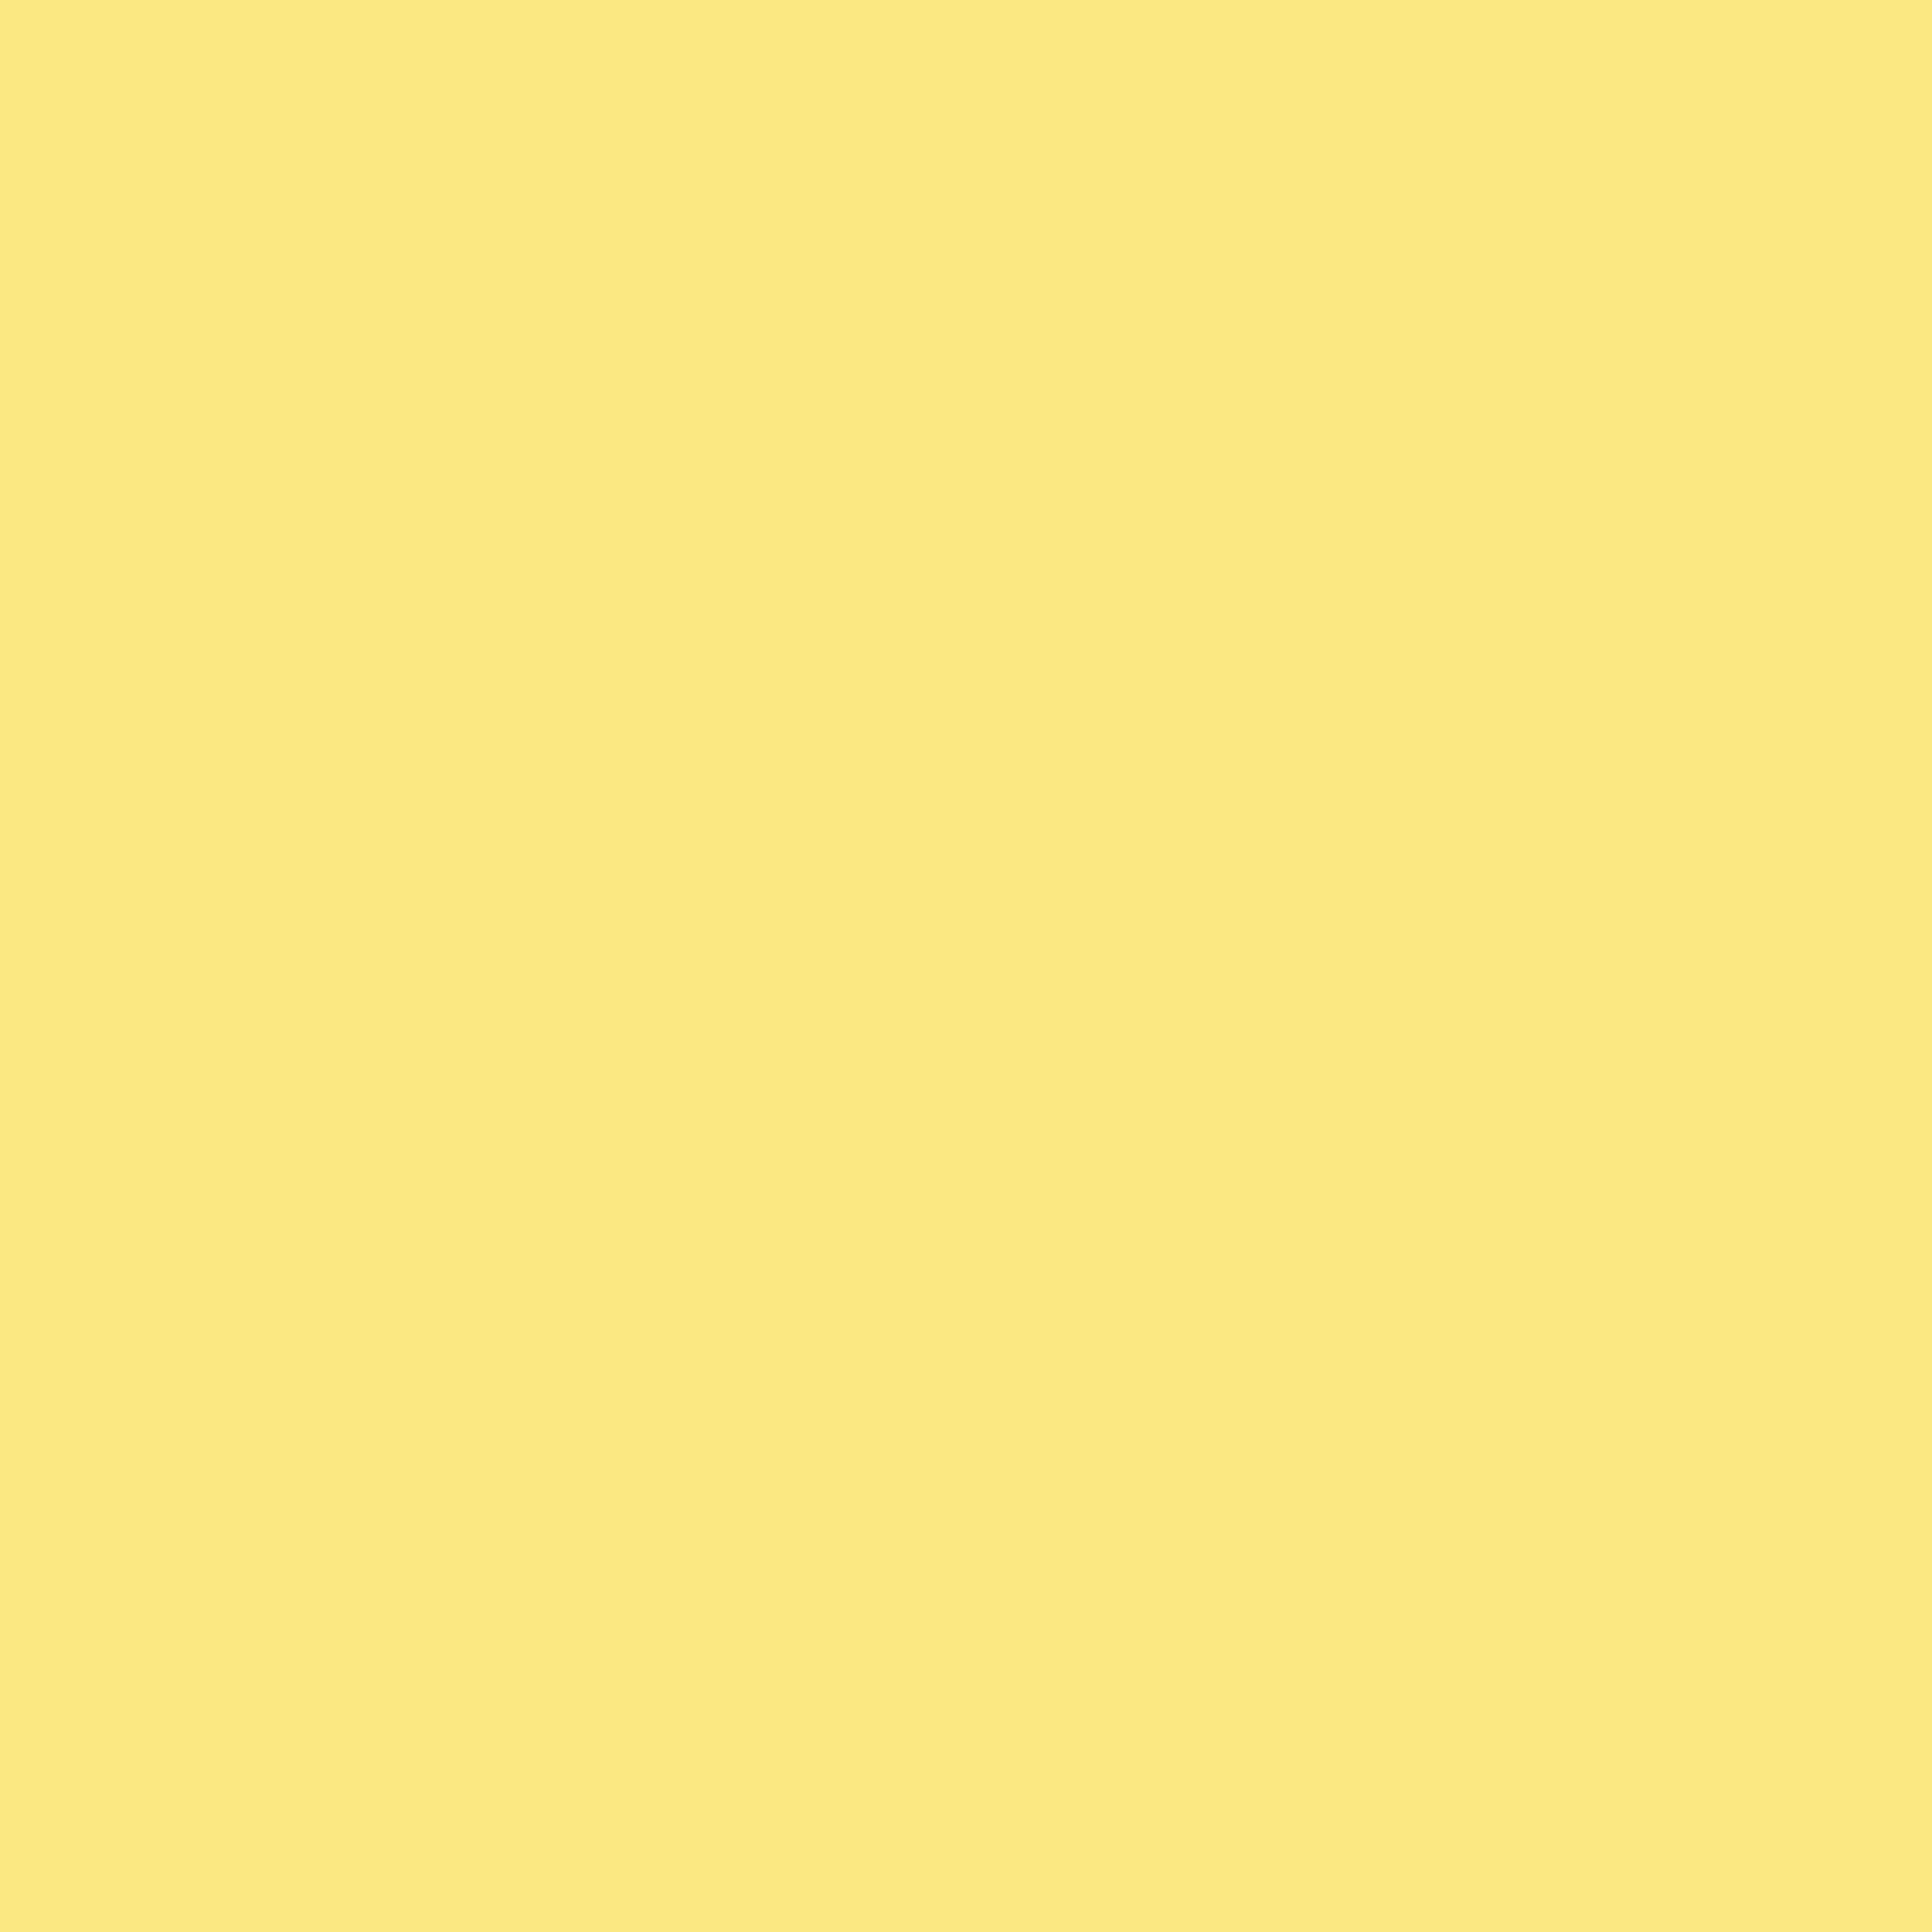 3600x3600 Yellow Crayola Solid Color Background